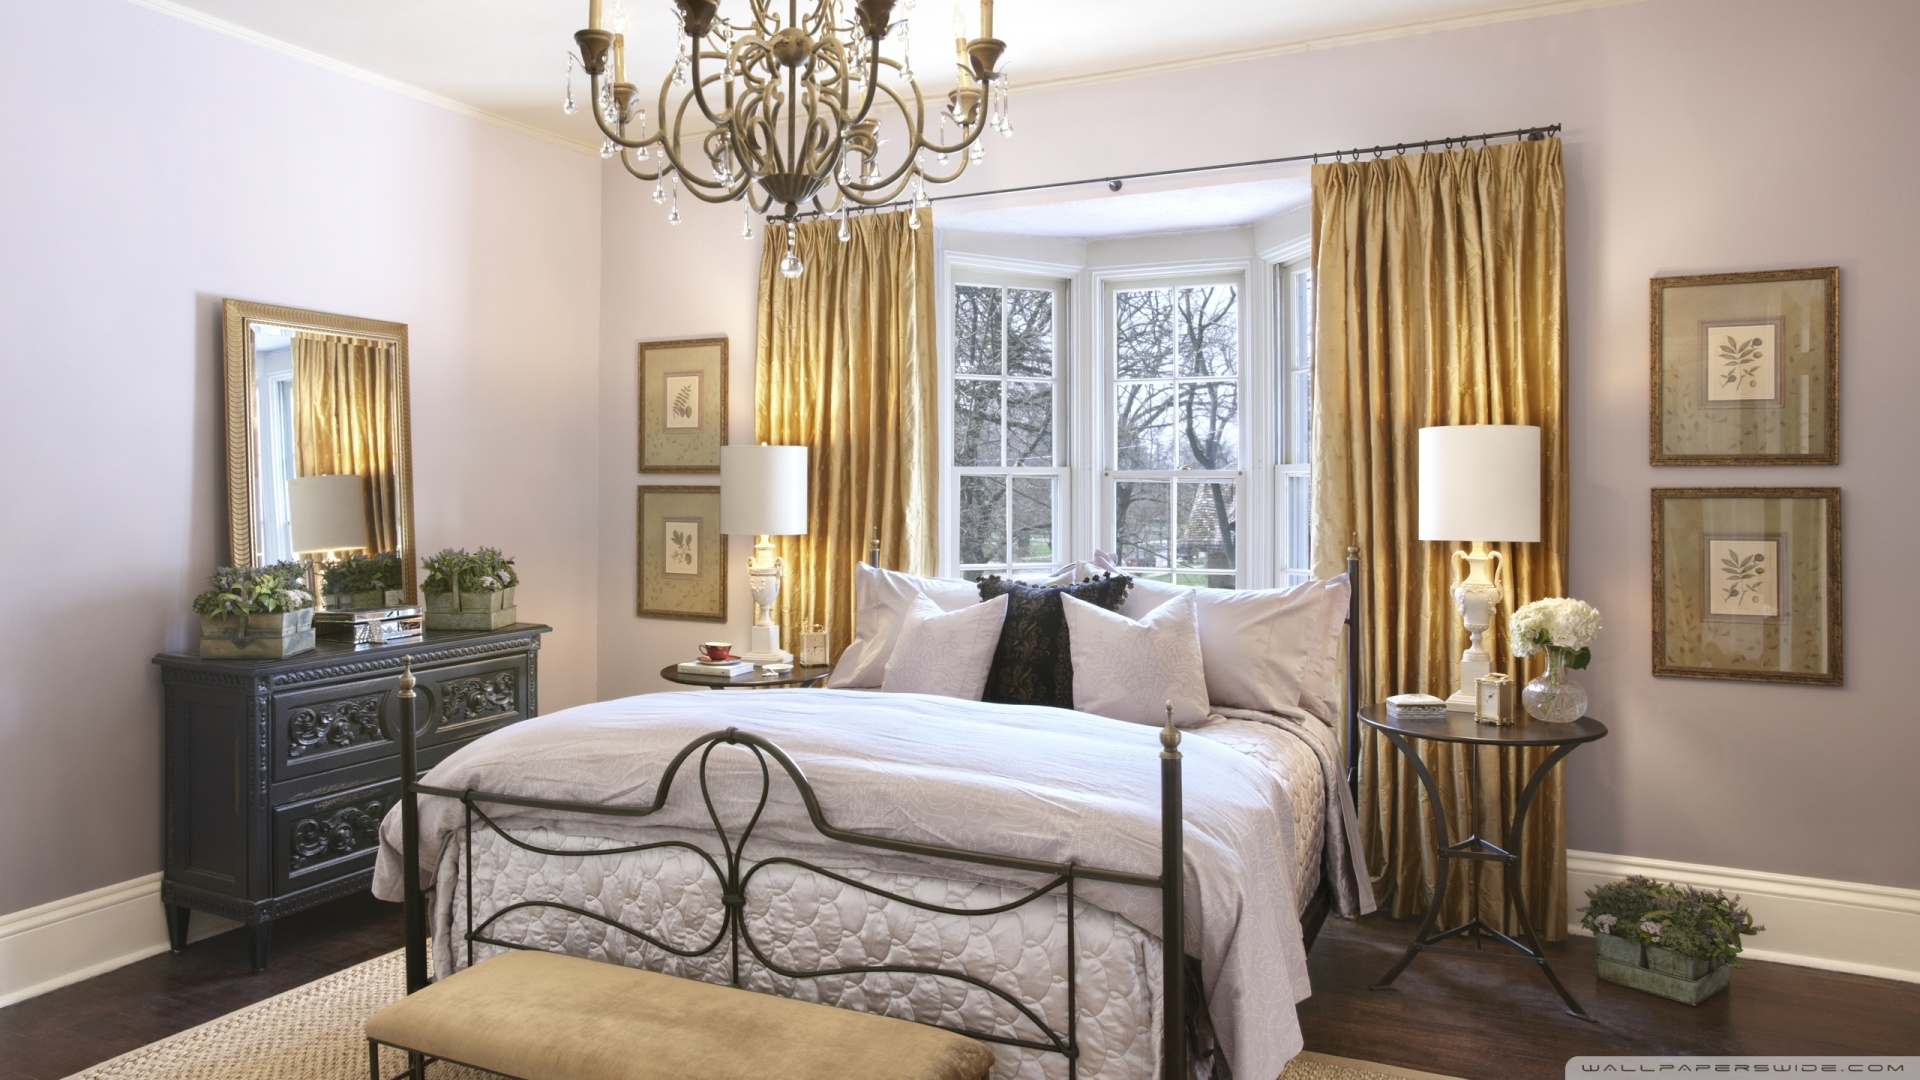 37 Startling Master Bedroom Chandeliers That Exudes Luxury Regina Regarding Chandeliers In The Bedroom (Image 1 of 25)